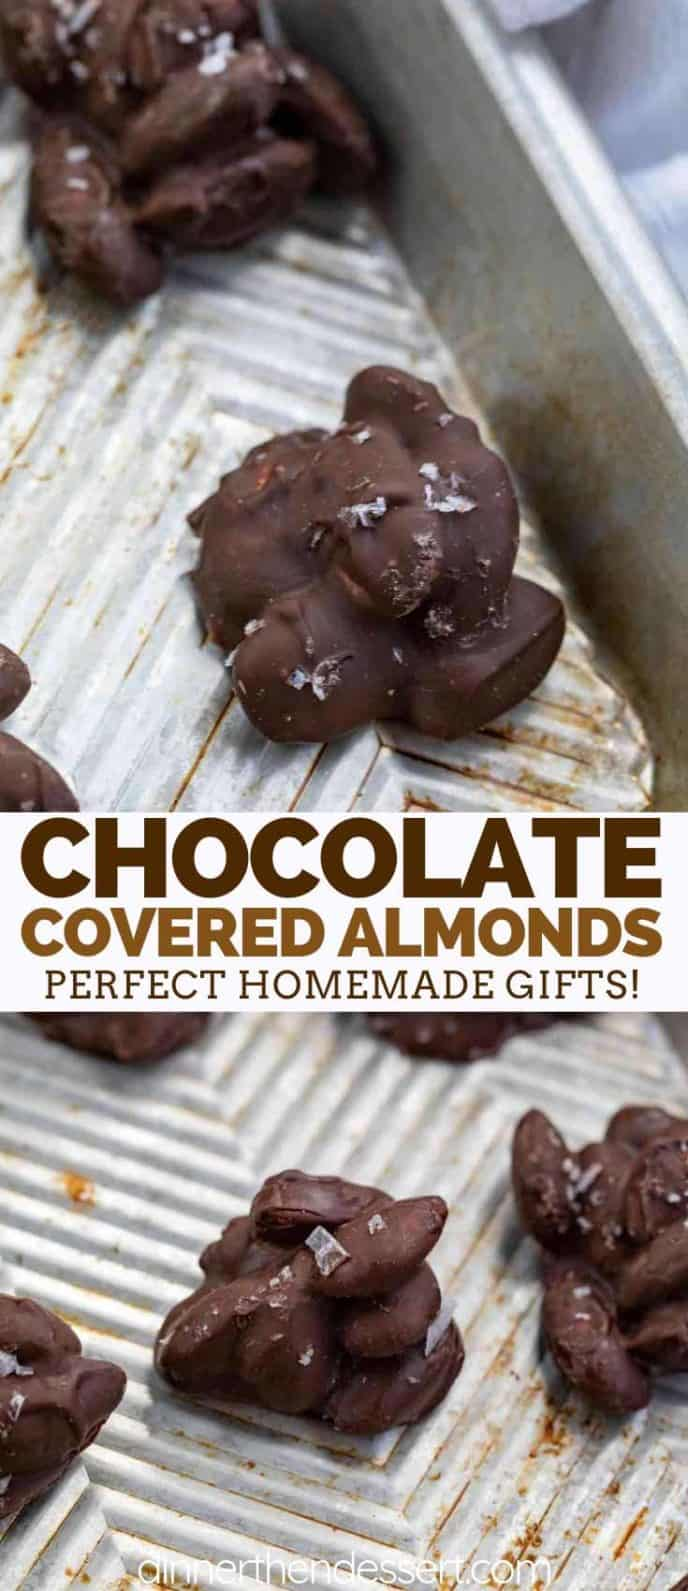 Chocolate Almonds with Sea Salt